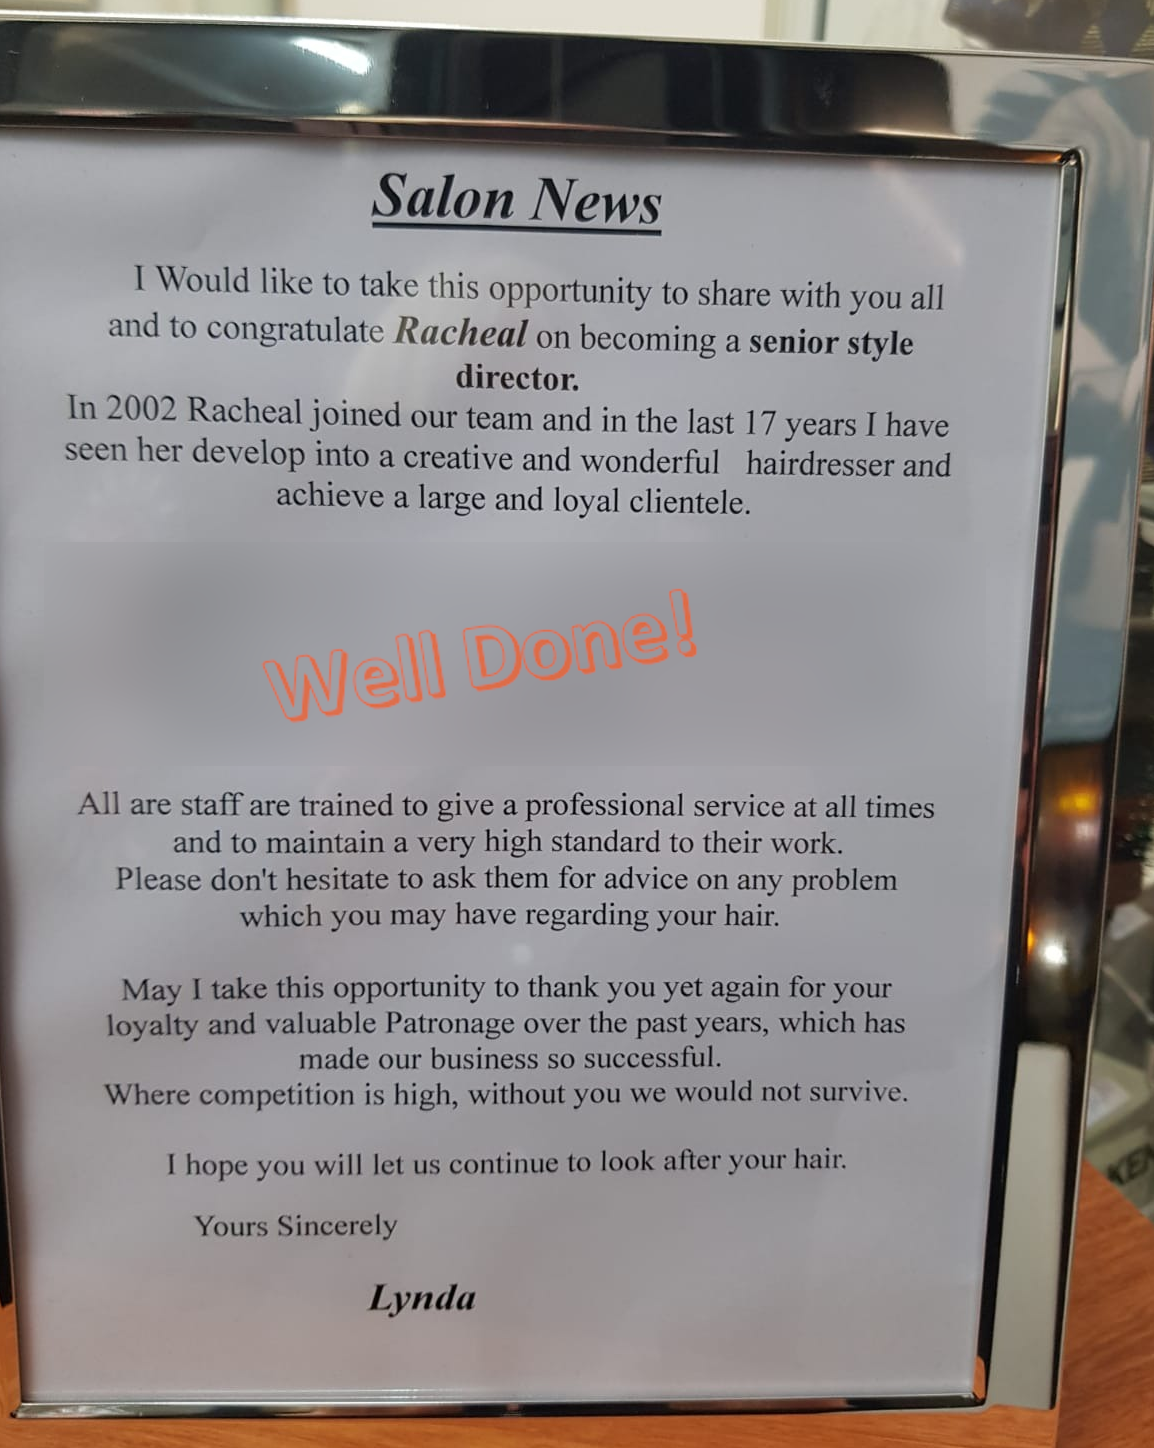 Notice for the promotion of Racheal to Senior Style Director at the Edge Hair Salon in South Liverpool